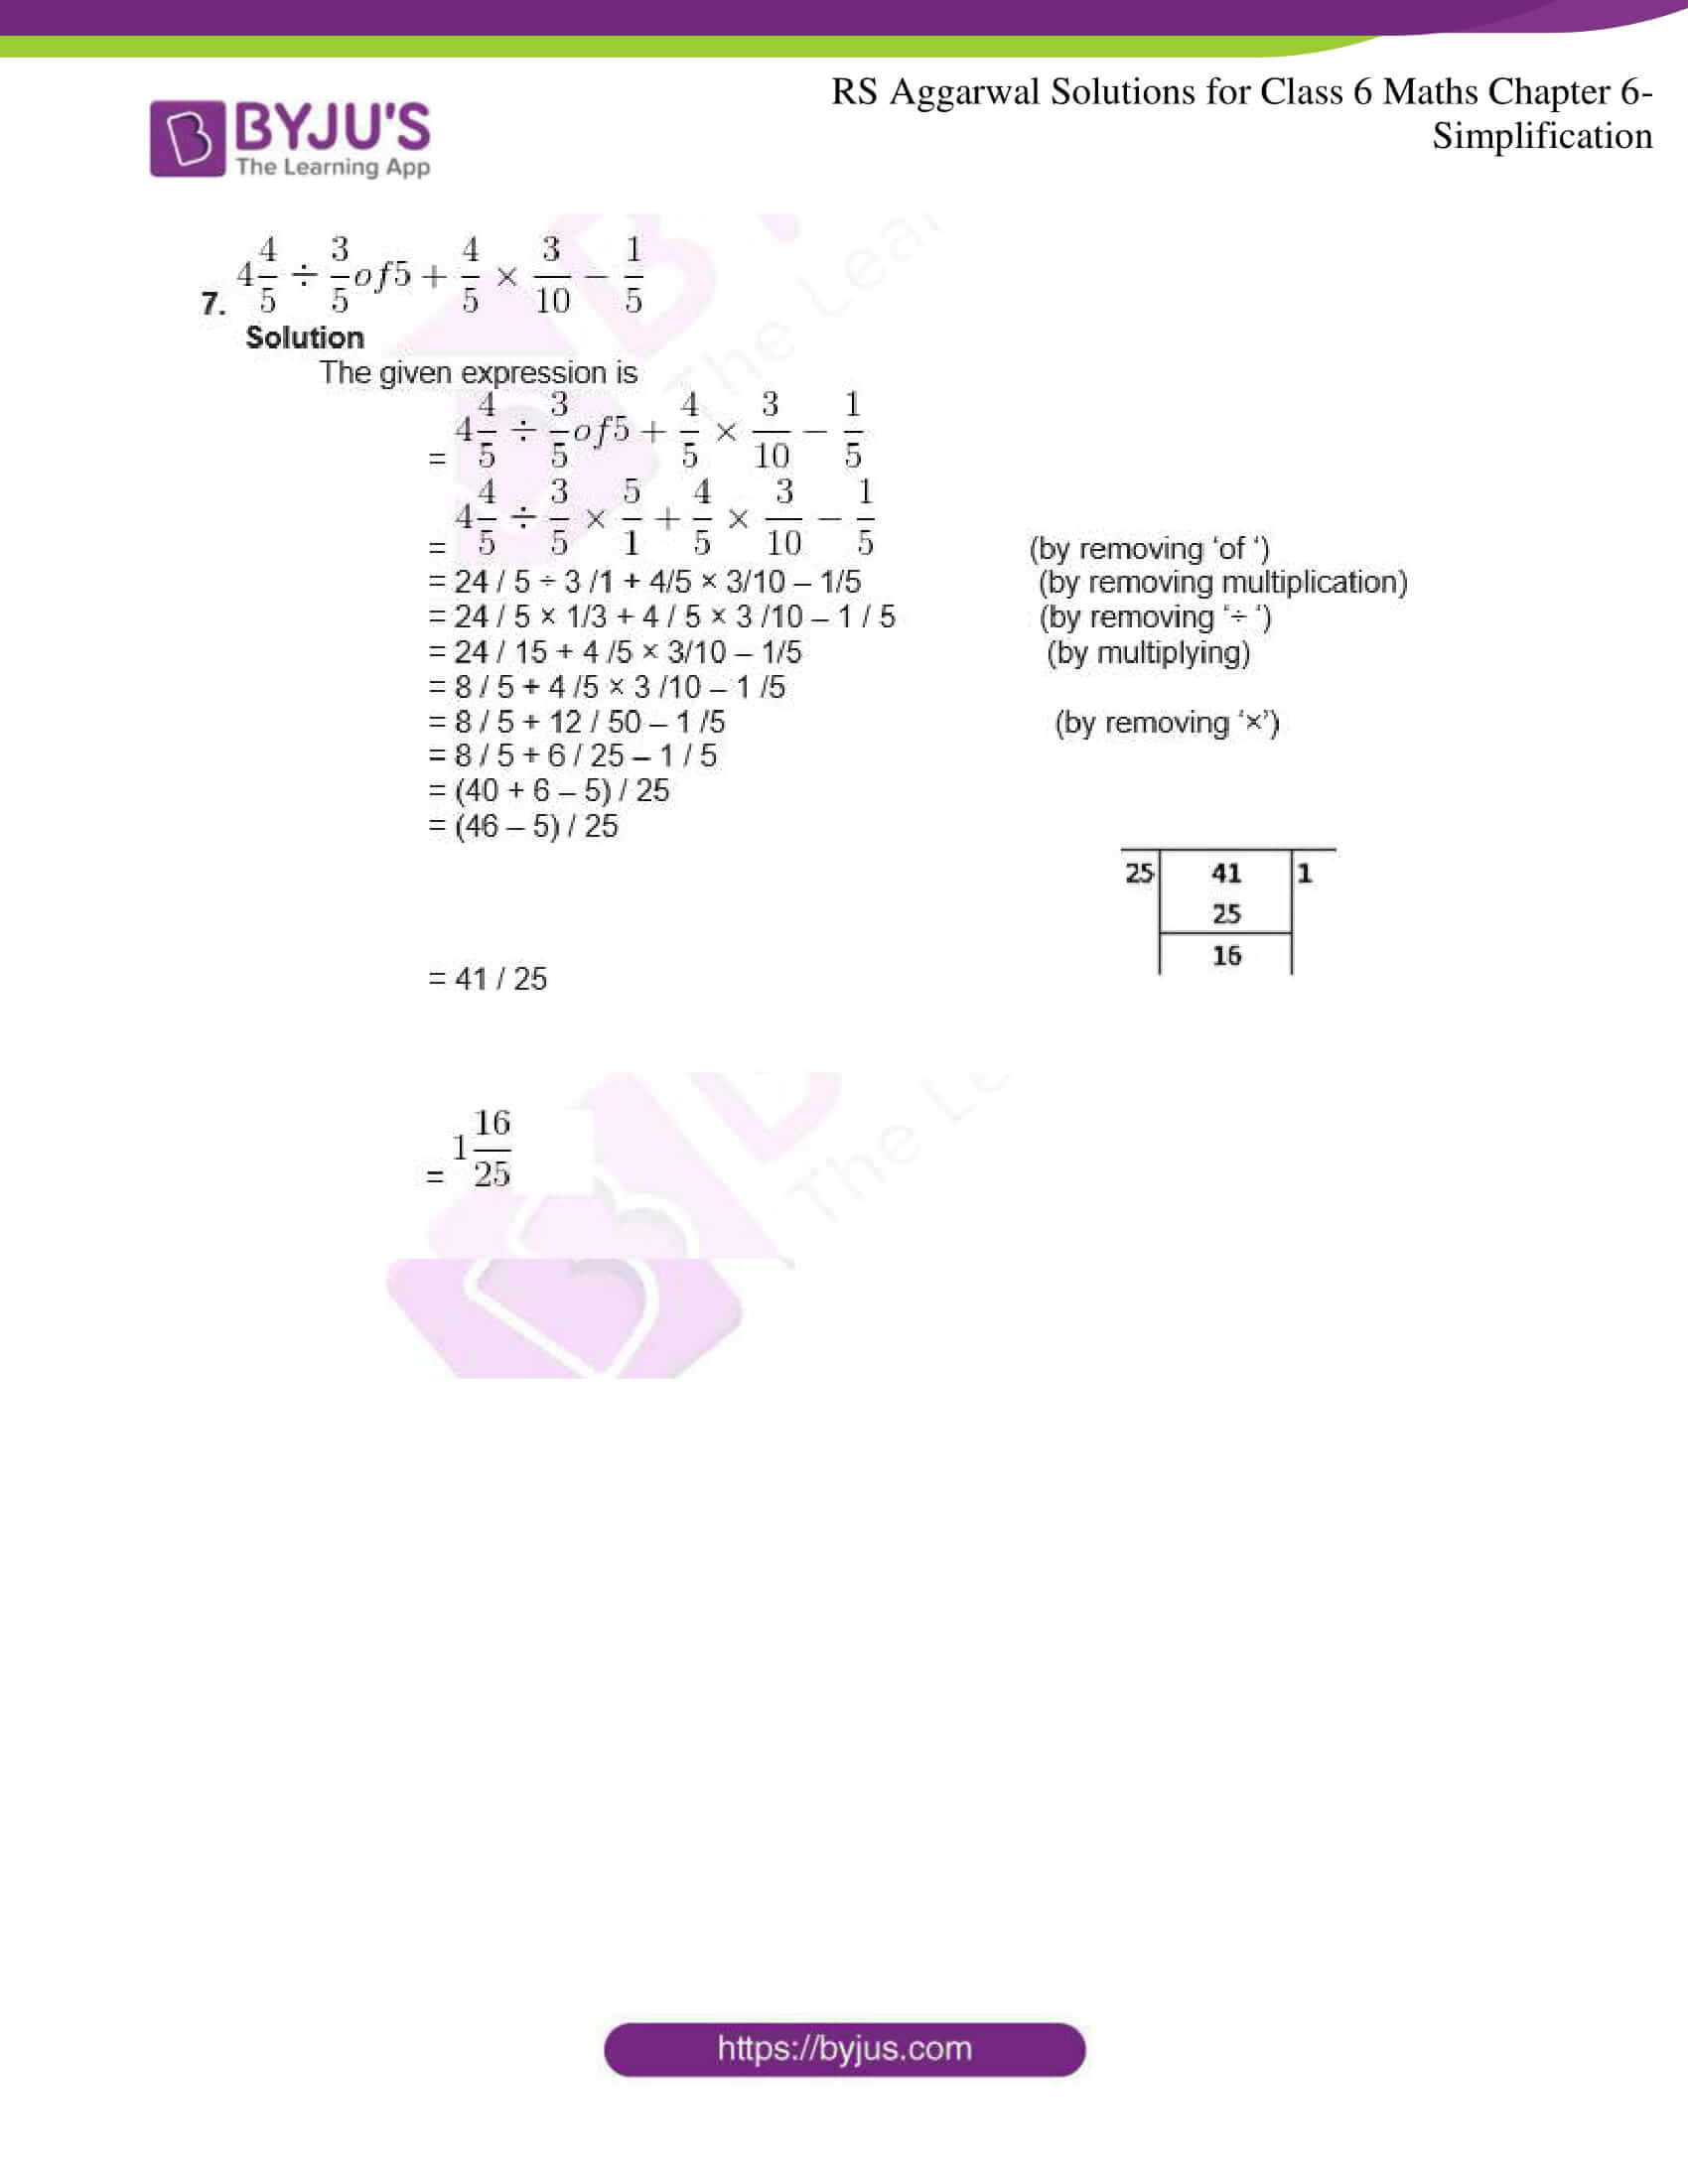 rs aggarwal solutions for class 6 maths chapter 6 3